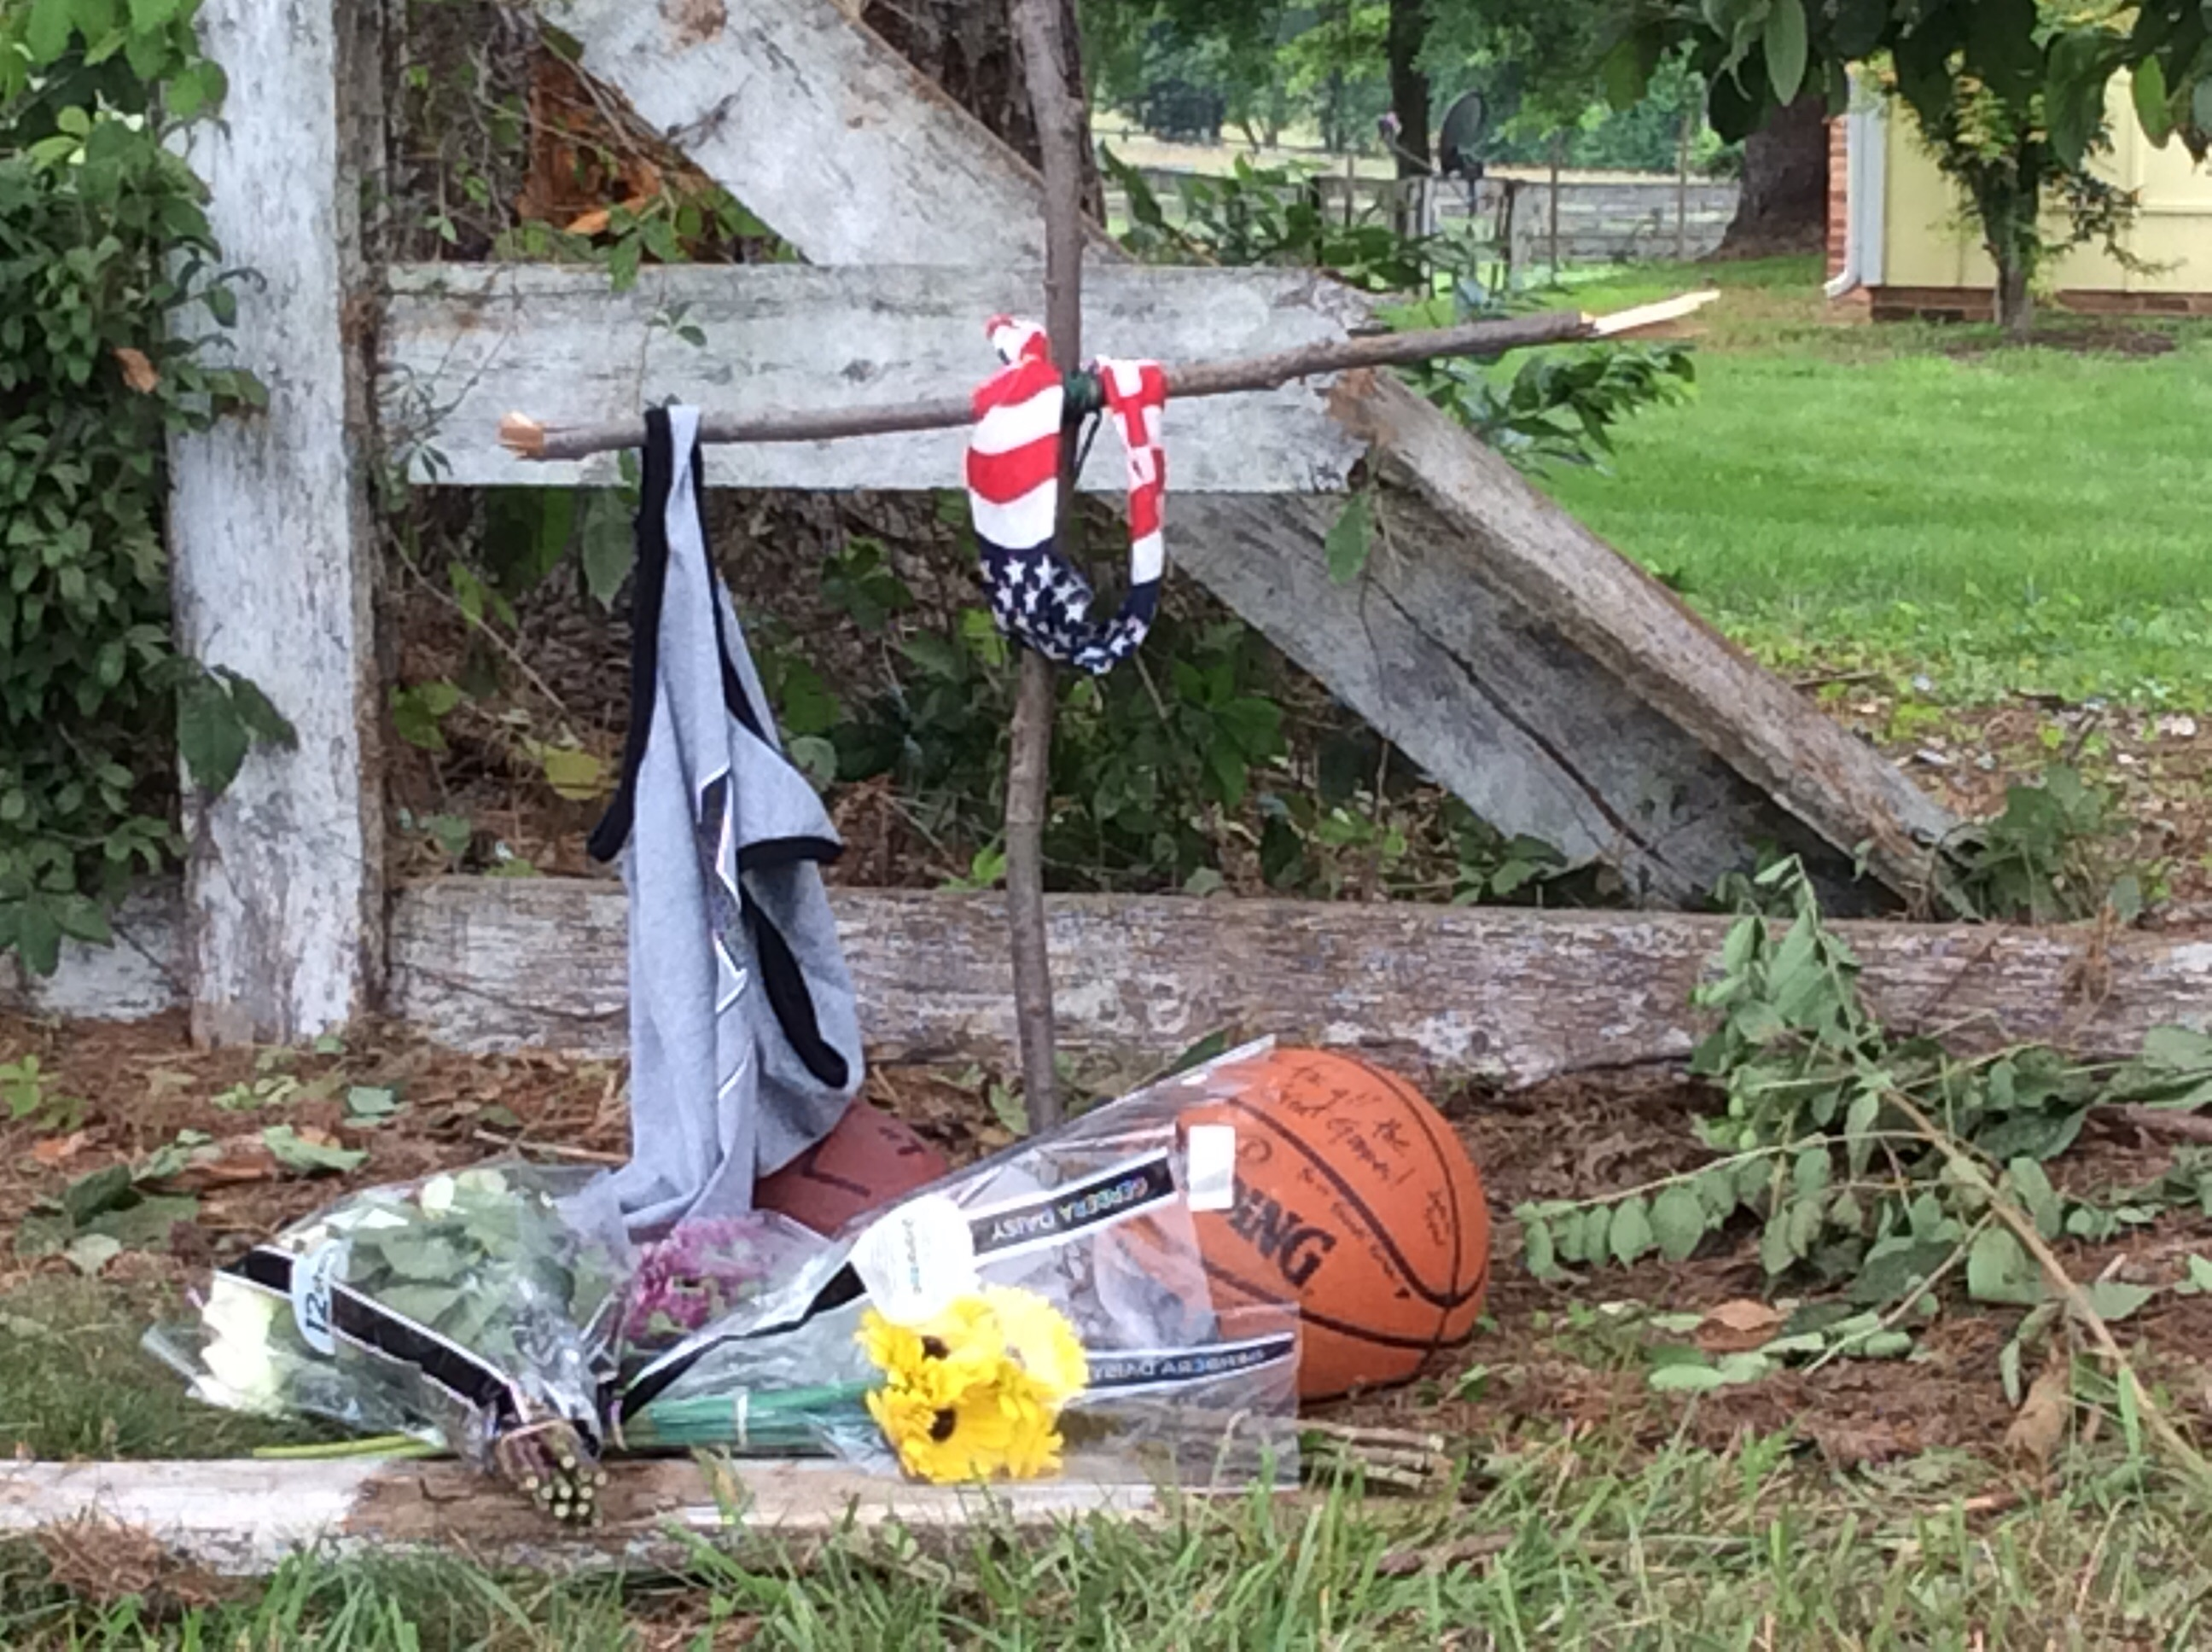 Memorial Growing for Teen Victims of Car Crash in North